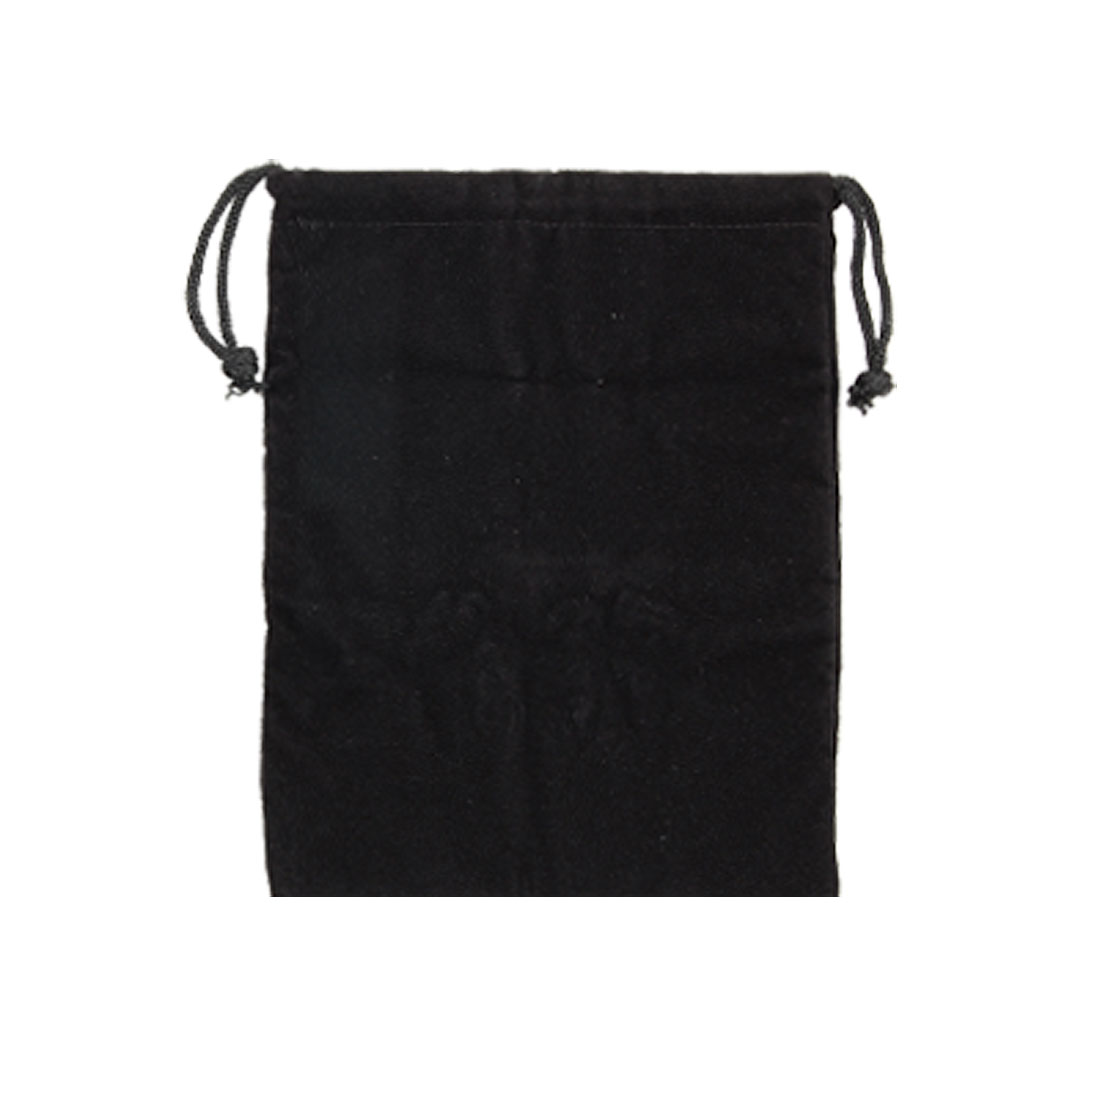 Black Panne Velvet Cloth Carrying Bag Pouch for Notebook Laptop